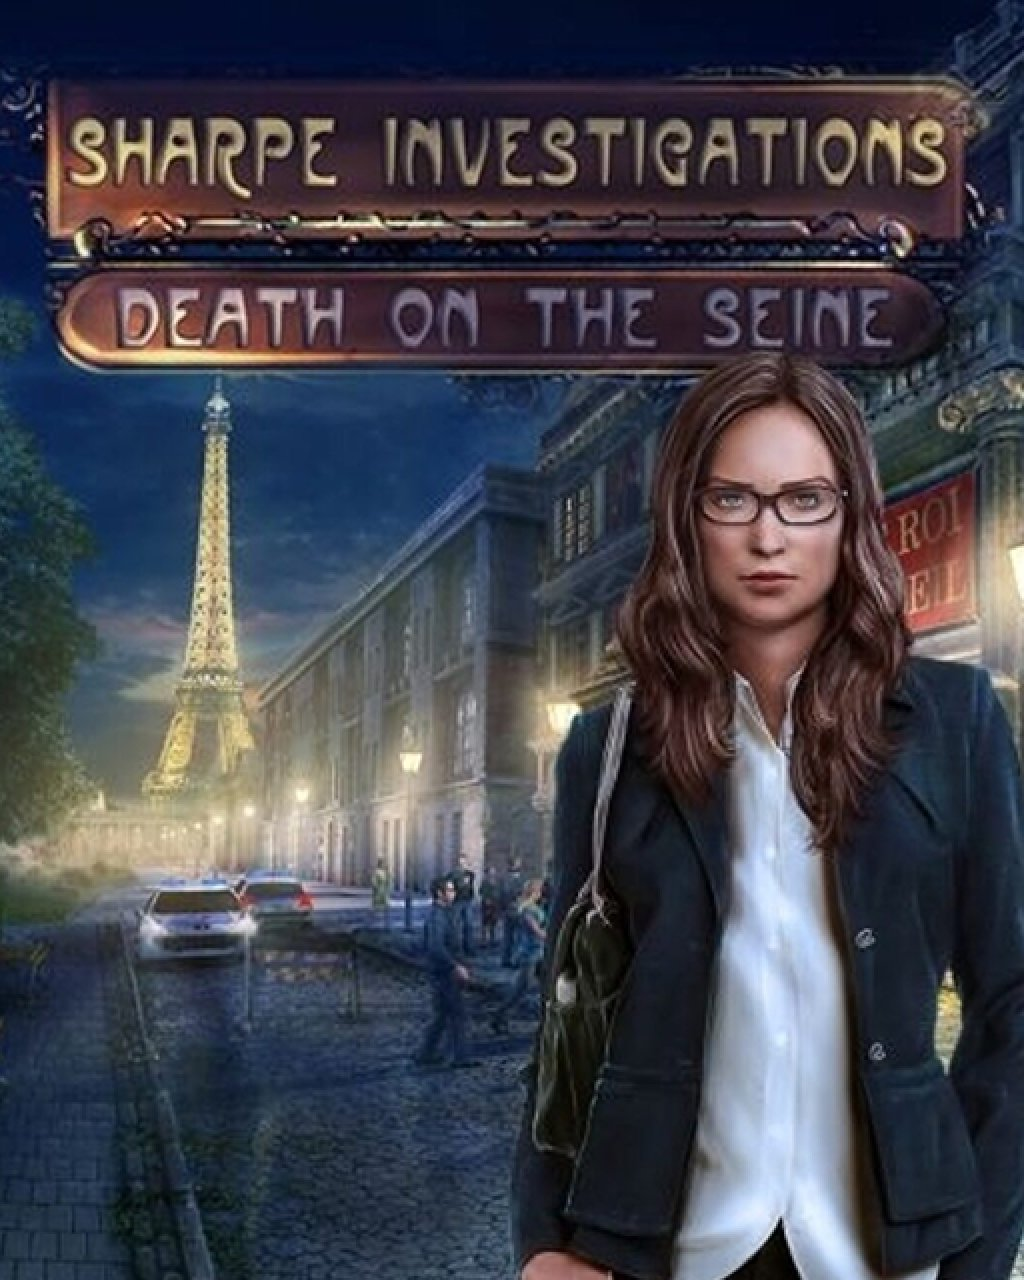 Sharpe Investigations Death on the Seine